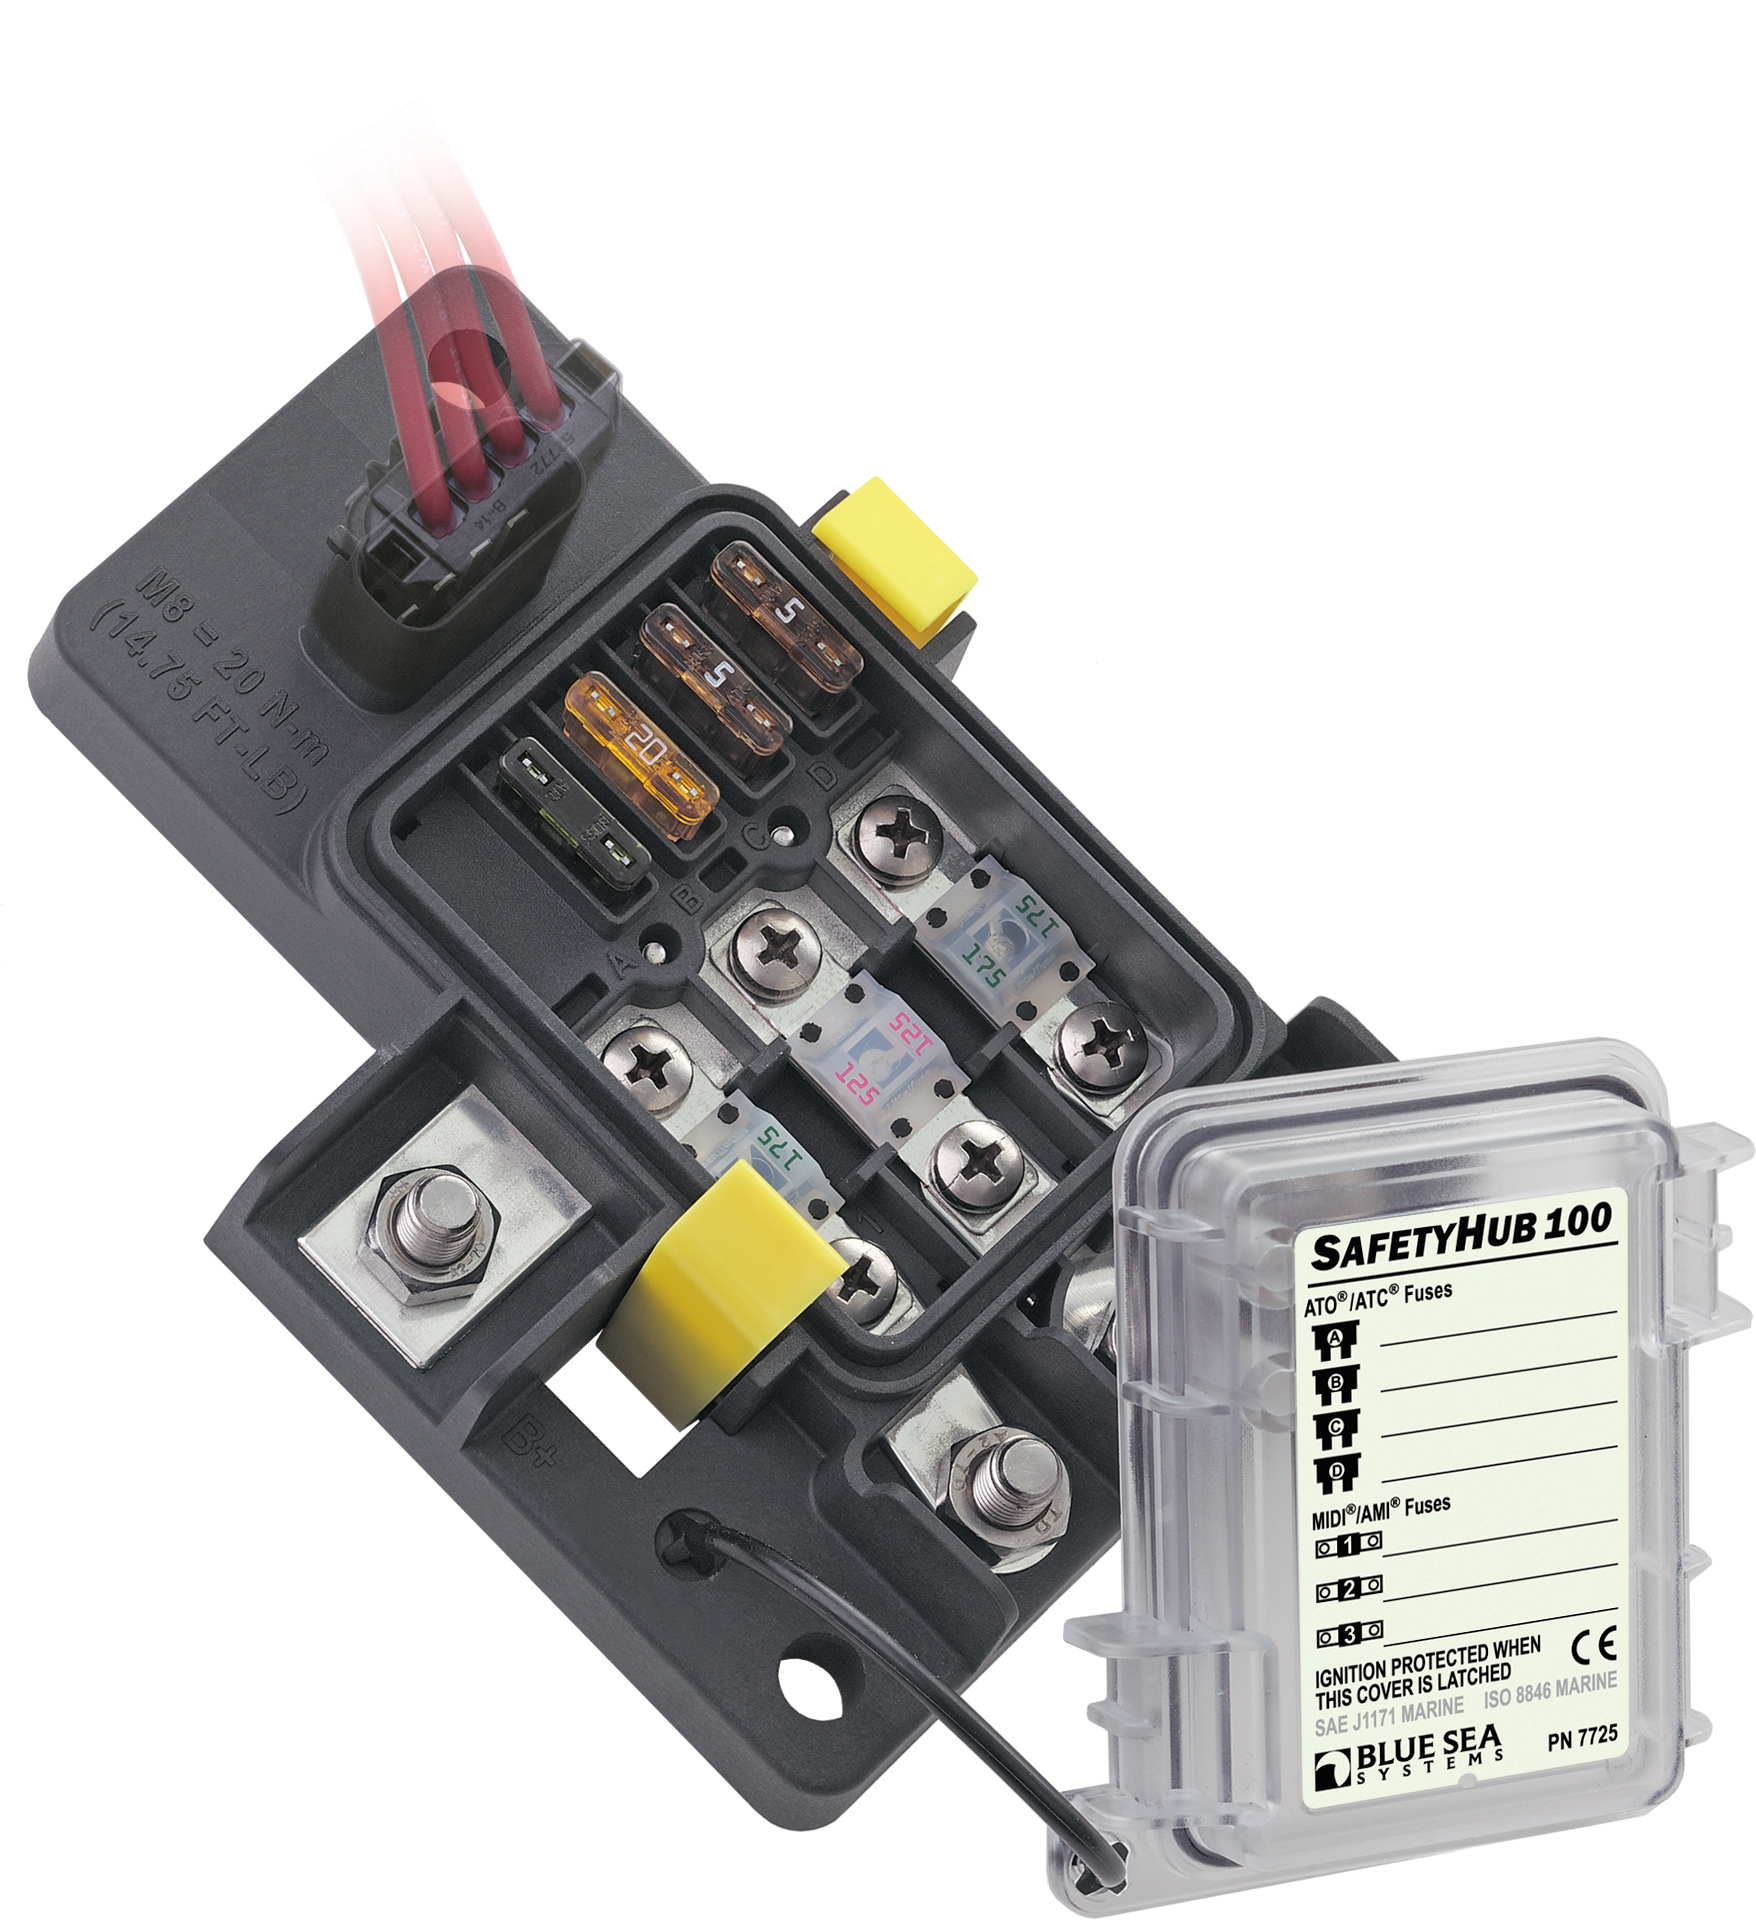 Sealed Fuse Box Circuit 3 Start Building A Wiring Diagram 2011 Kia Forte Safetyhub 100 Block Blue Sea Systems Rh Bluesea Com 2010